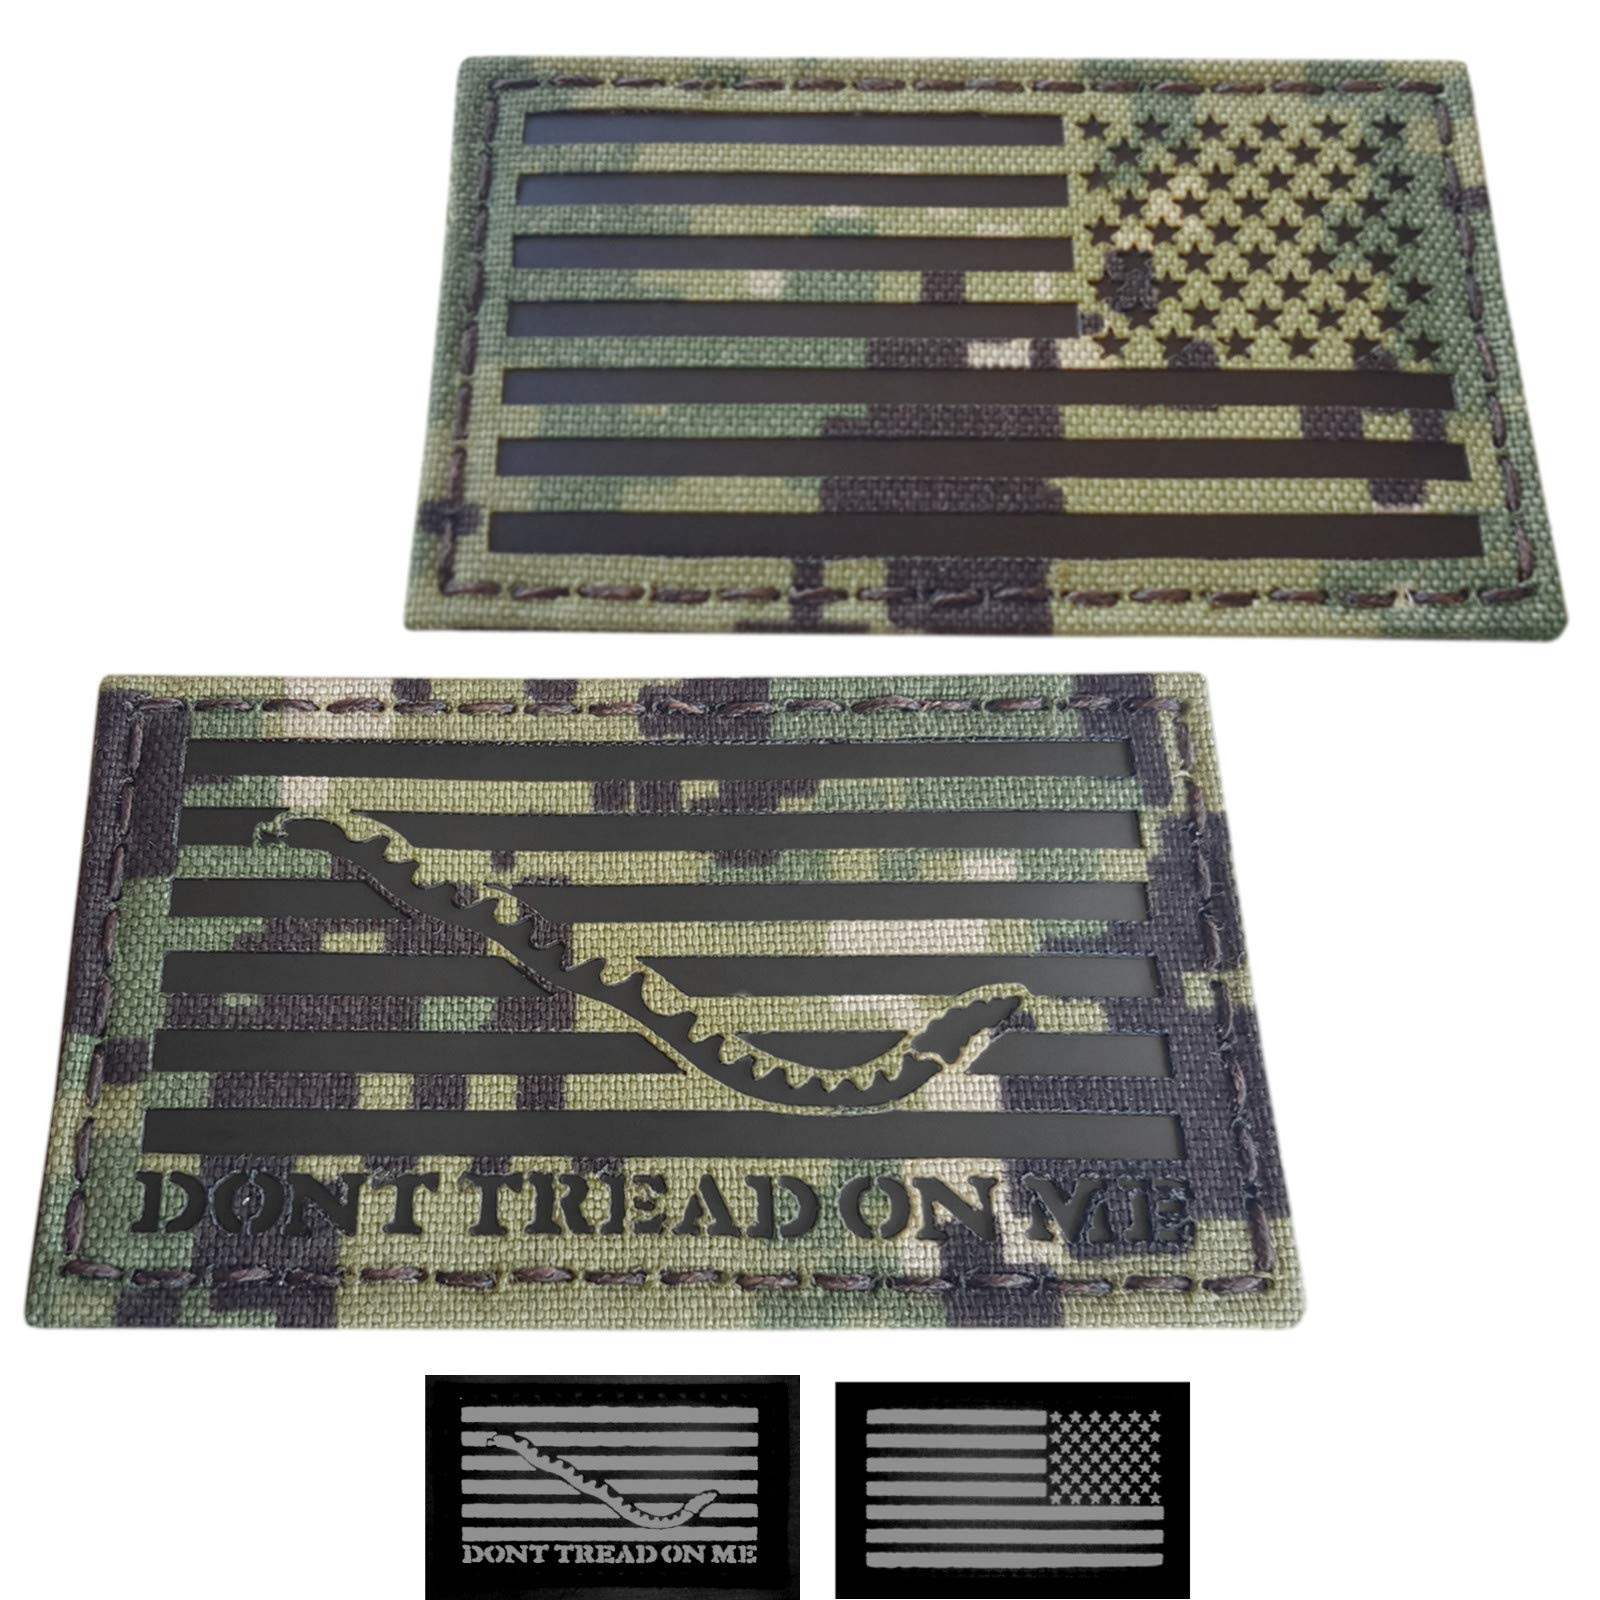 Tactical Freaky IR Bundle Set of 2 pcs AOR2 First Navy Jack USA Reversed Flag DTOM 2x3.5 NWU Type III Infrared Chest Rig Plate Carrier Morale Fastener Patches by Tactical Freaky